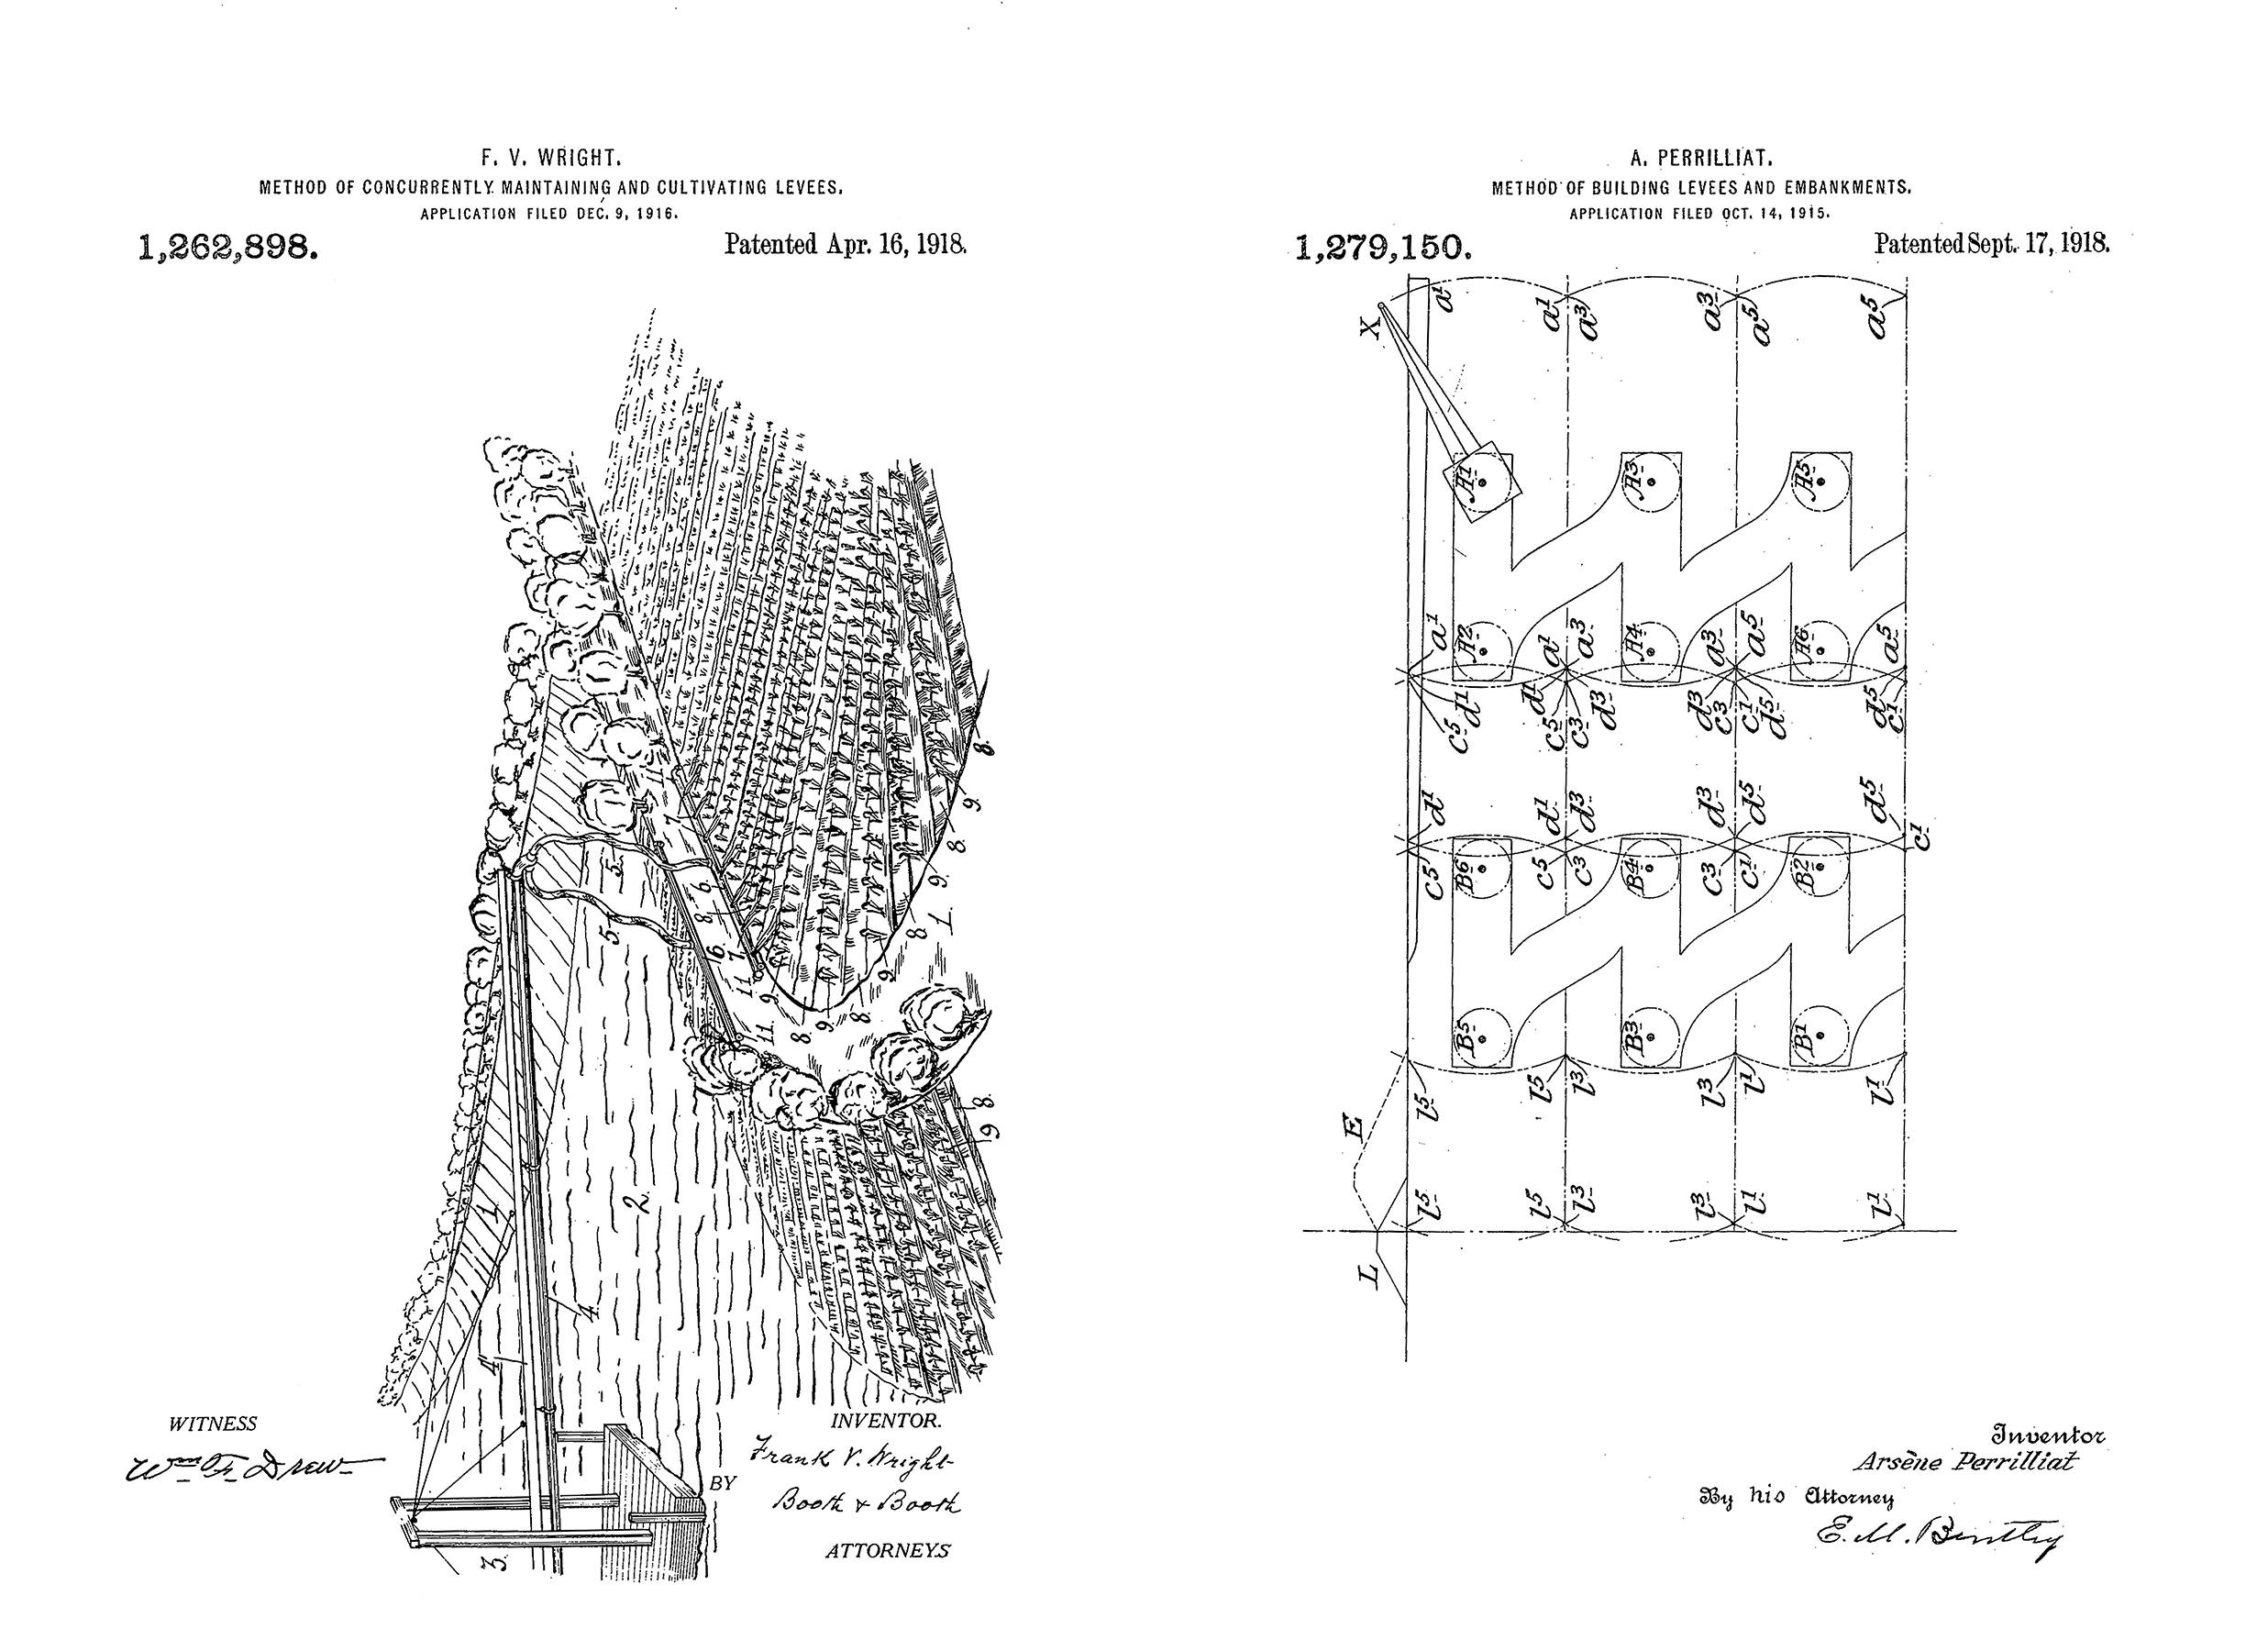 "Left: US1262898 ""Method of Concurrently Maintaining and Cultivating Levees:"" hybridizes agricultural production with levee building through the use of sediment slurries, irrigation trenches, and specialized hydraulic dredges like the Chinampa of Mexico. Right: US1279150 ""Method of Building Levees and Embankments:"" choreographs the movement of a dragline excavator through the landscape and describes the relative ratio of burrow pits to levee height and the most efficient movement of machinery and material. Images from USPTO.gov."